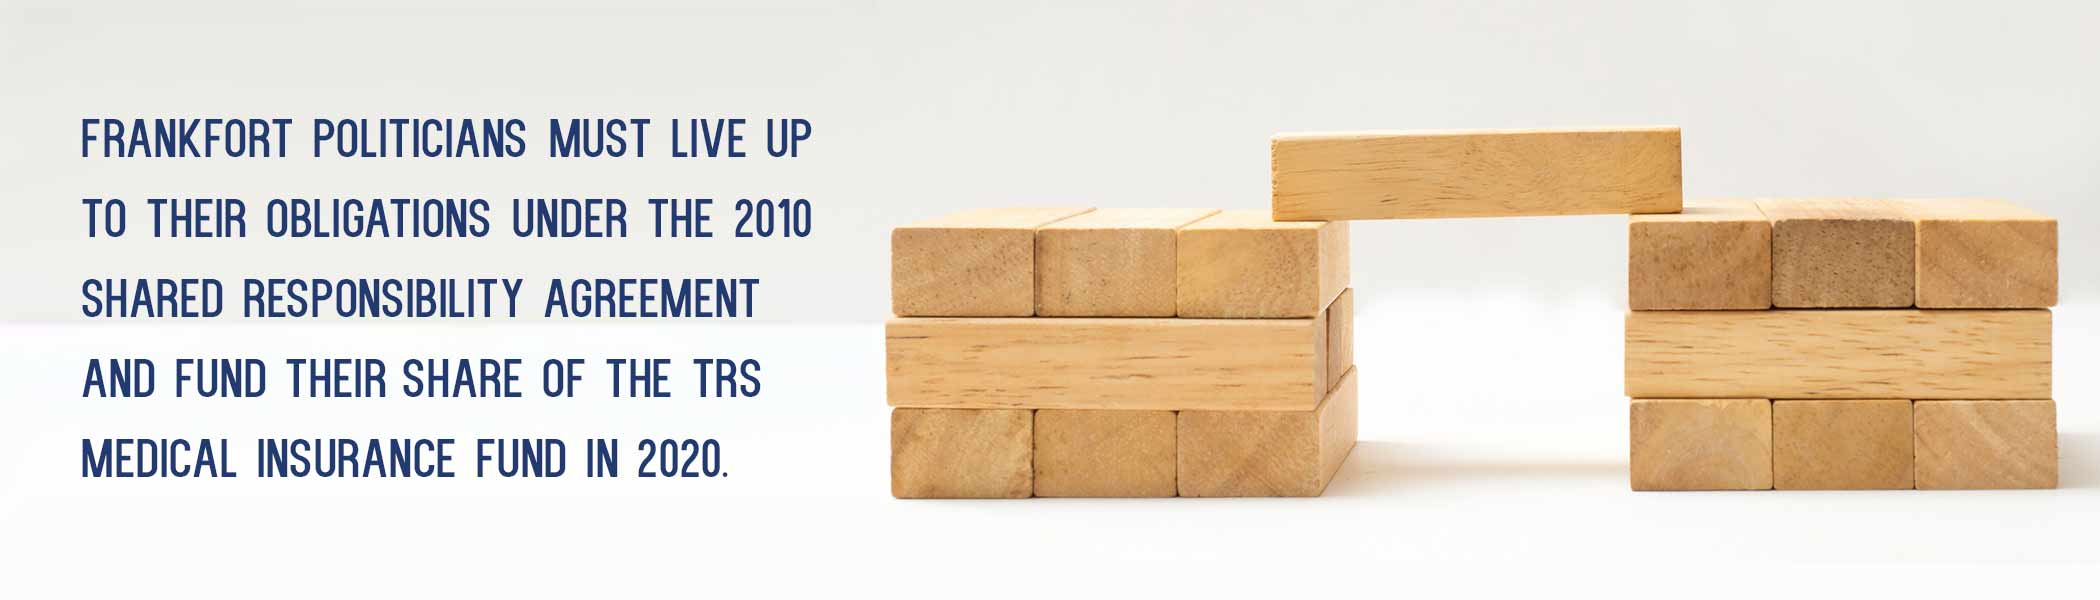 wood blocks stacked in 2 columns, with one block bridging the gap. The copy reads: Frankfort Politicians must live up to their obligations under the 2010 Shared Responsibility Agreement and fund their share of the TRS Medical Insurance Fund in 2020.